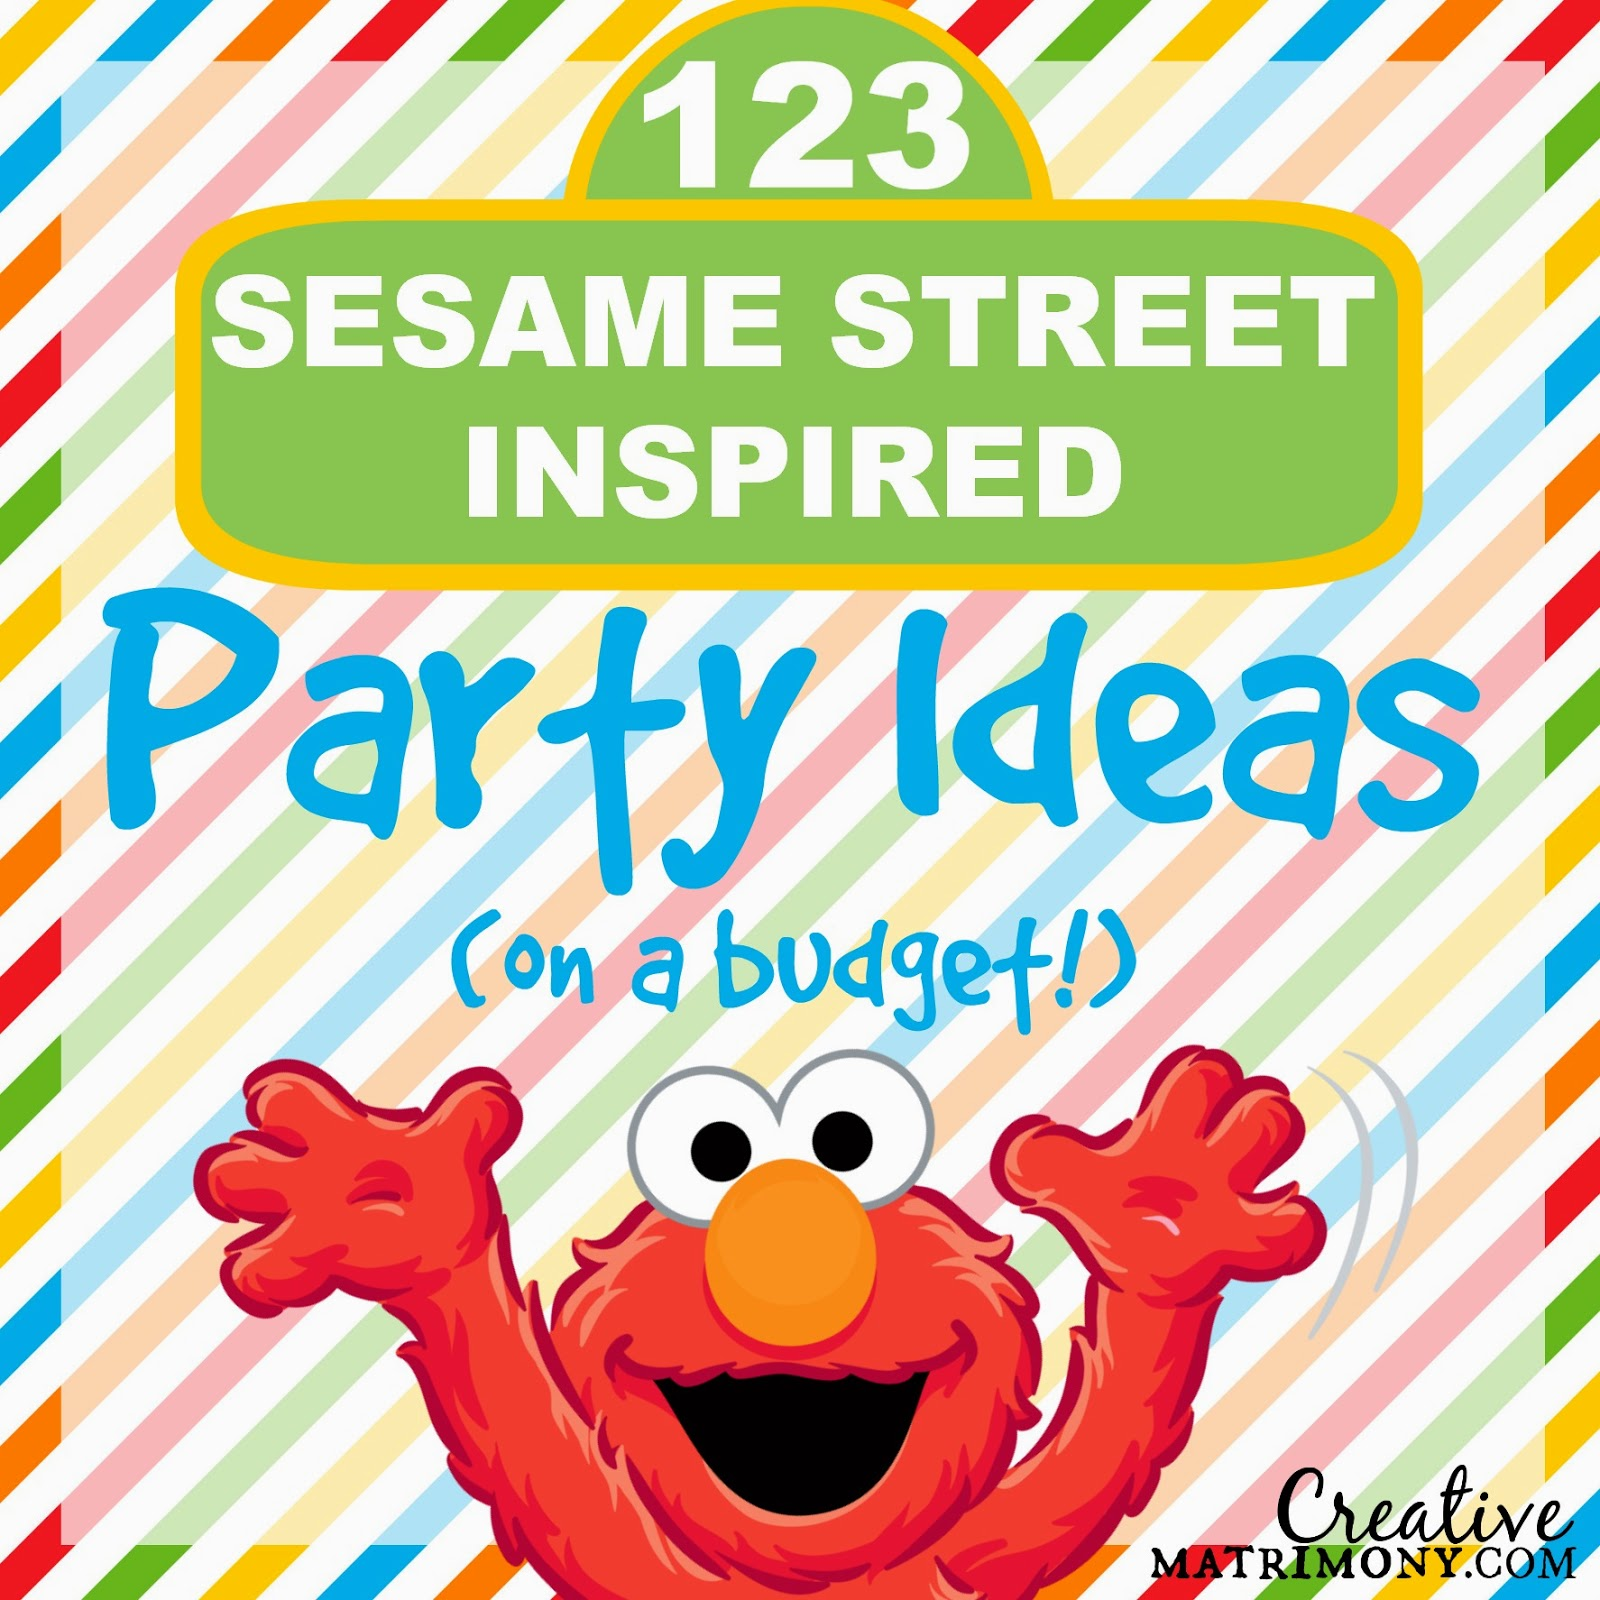 Sesame Street Birthday Party on a Budget